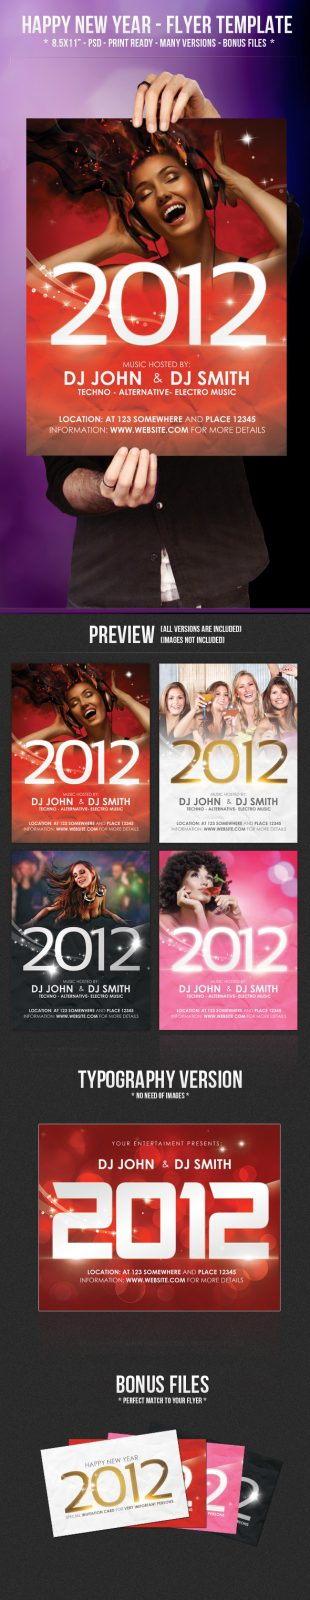 Free PSD Party Flyers Templates 4